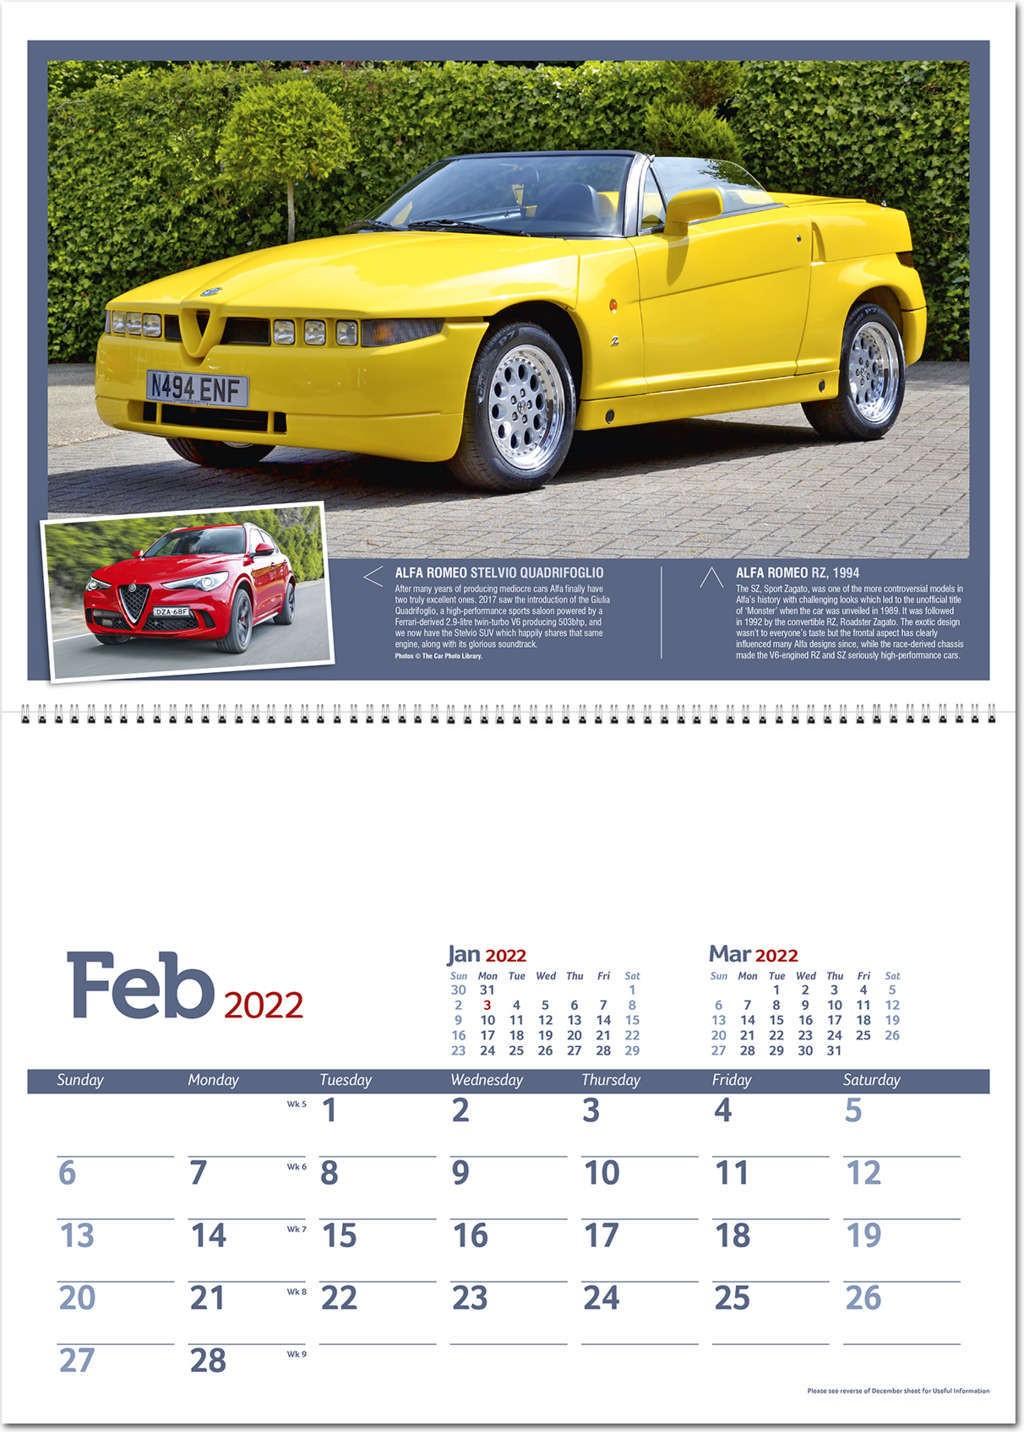 Classic Marques Past and Present Postage Saver Calendar